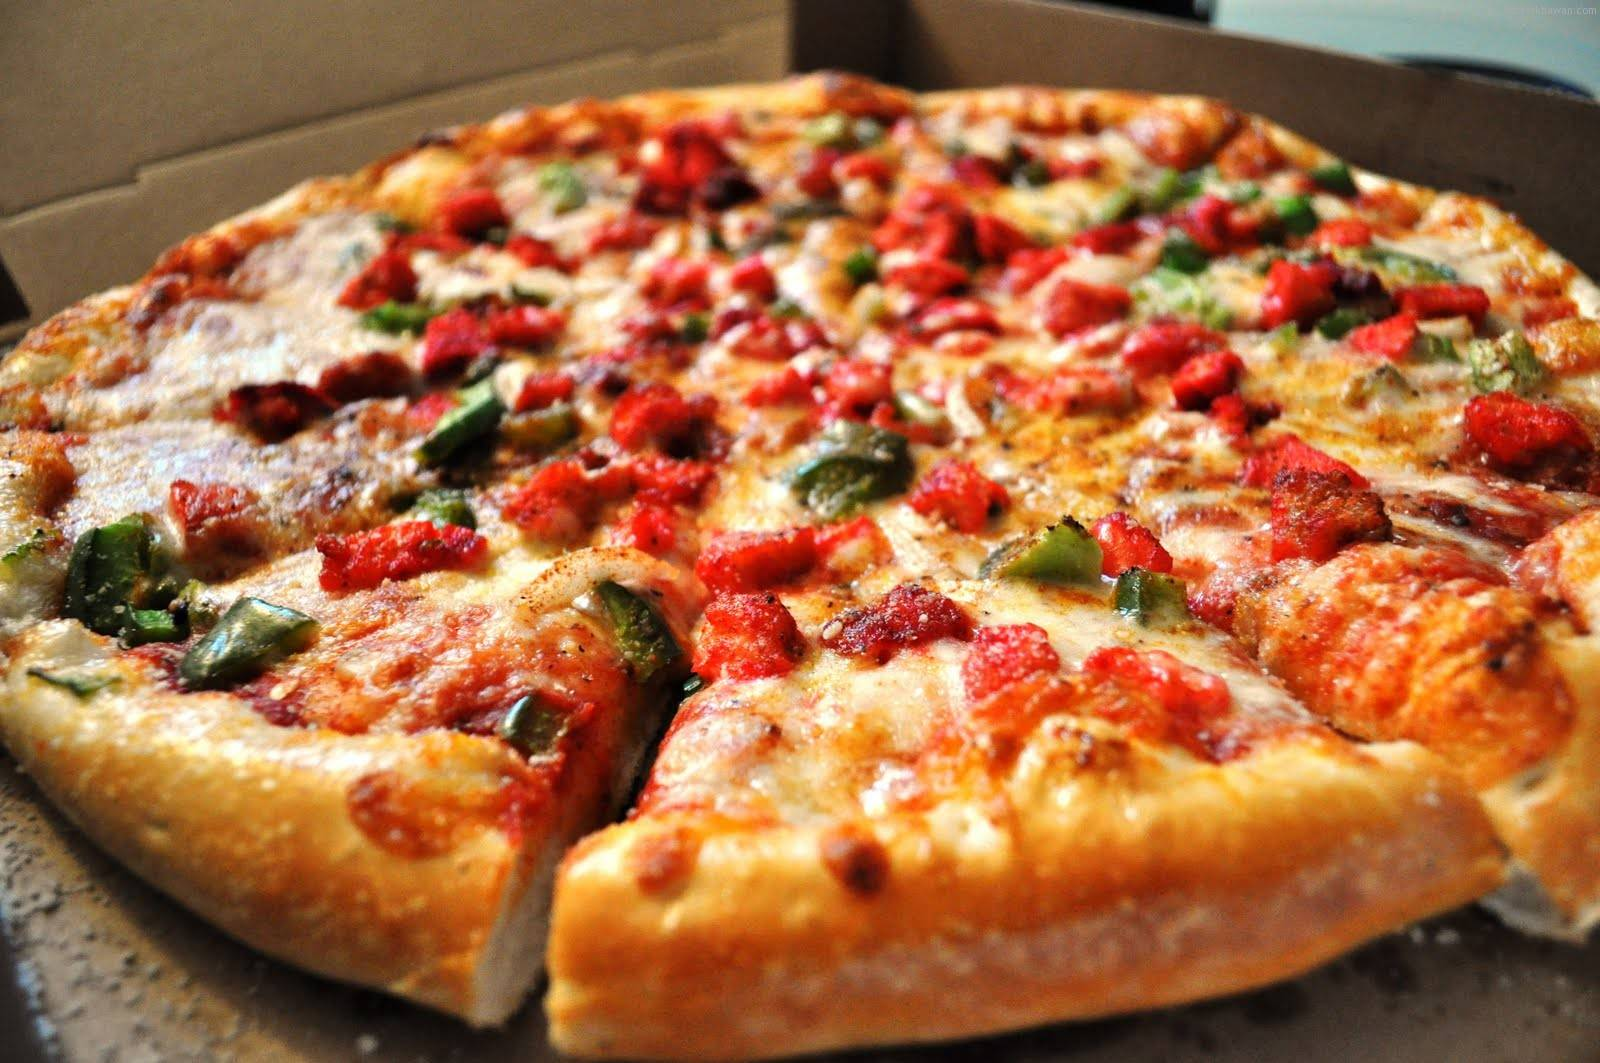 Pizza Hut Coupons – Save up to 50%. This first page is dedicated mainly to Pizza Hut coupons, as the Pizza Hut Company is the largest pizza chain in America.